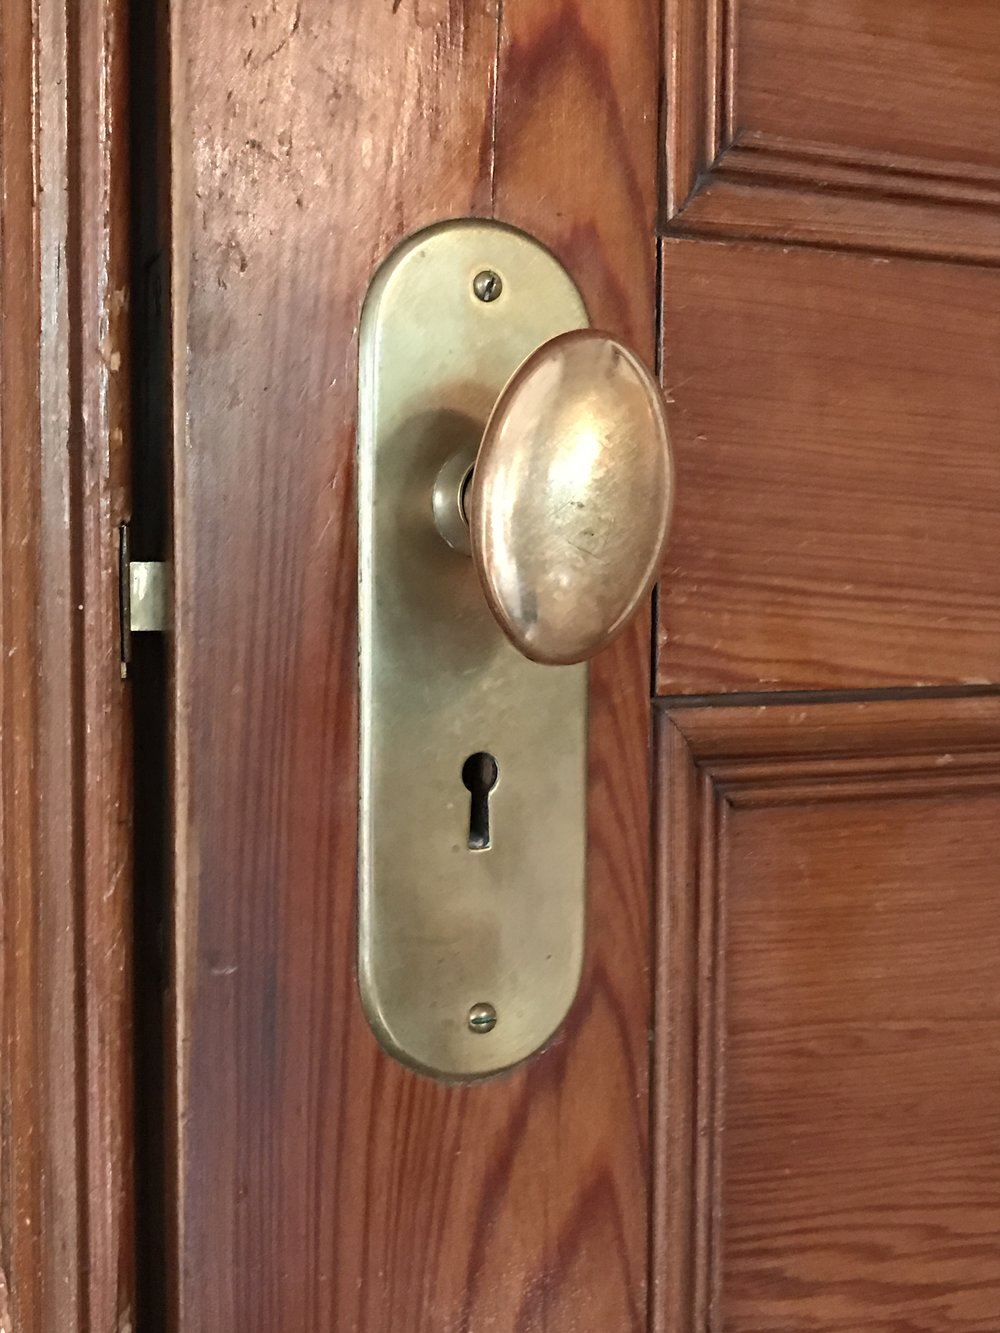 Pleasant 548 Doorknob.JPG